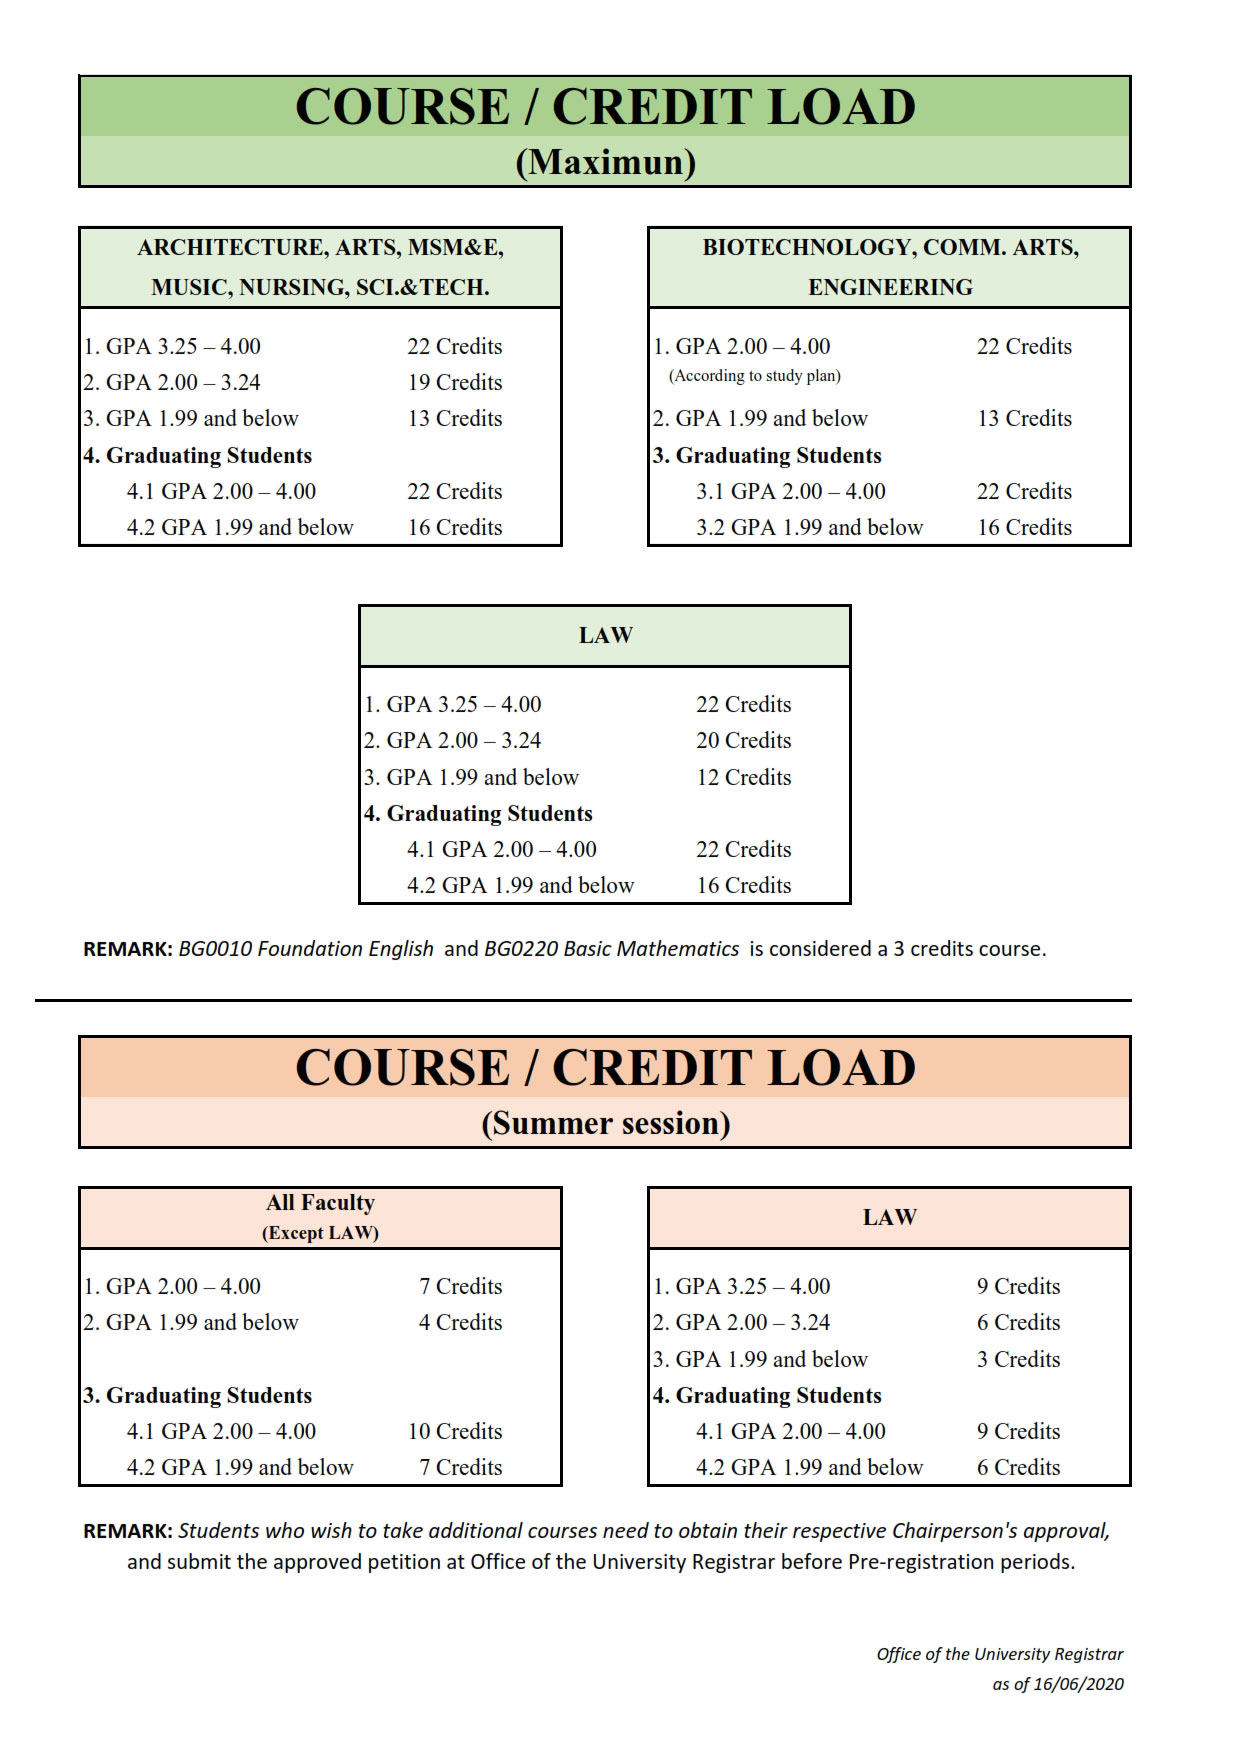 Course-credit-load-+Law-(16-06-2020)_001